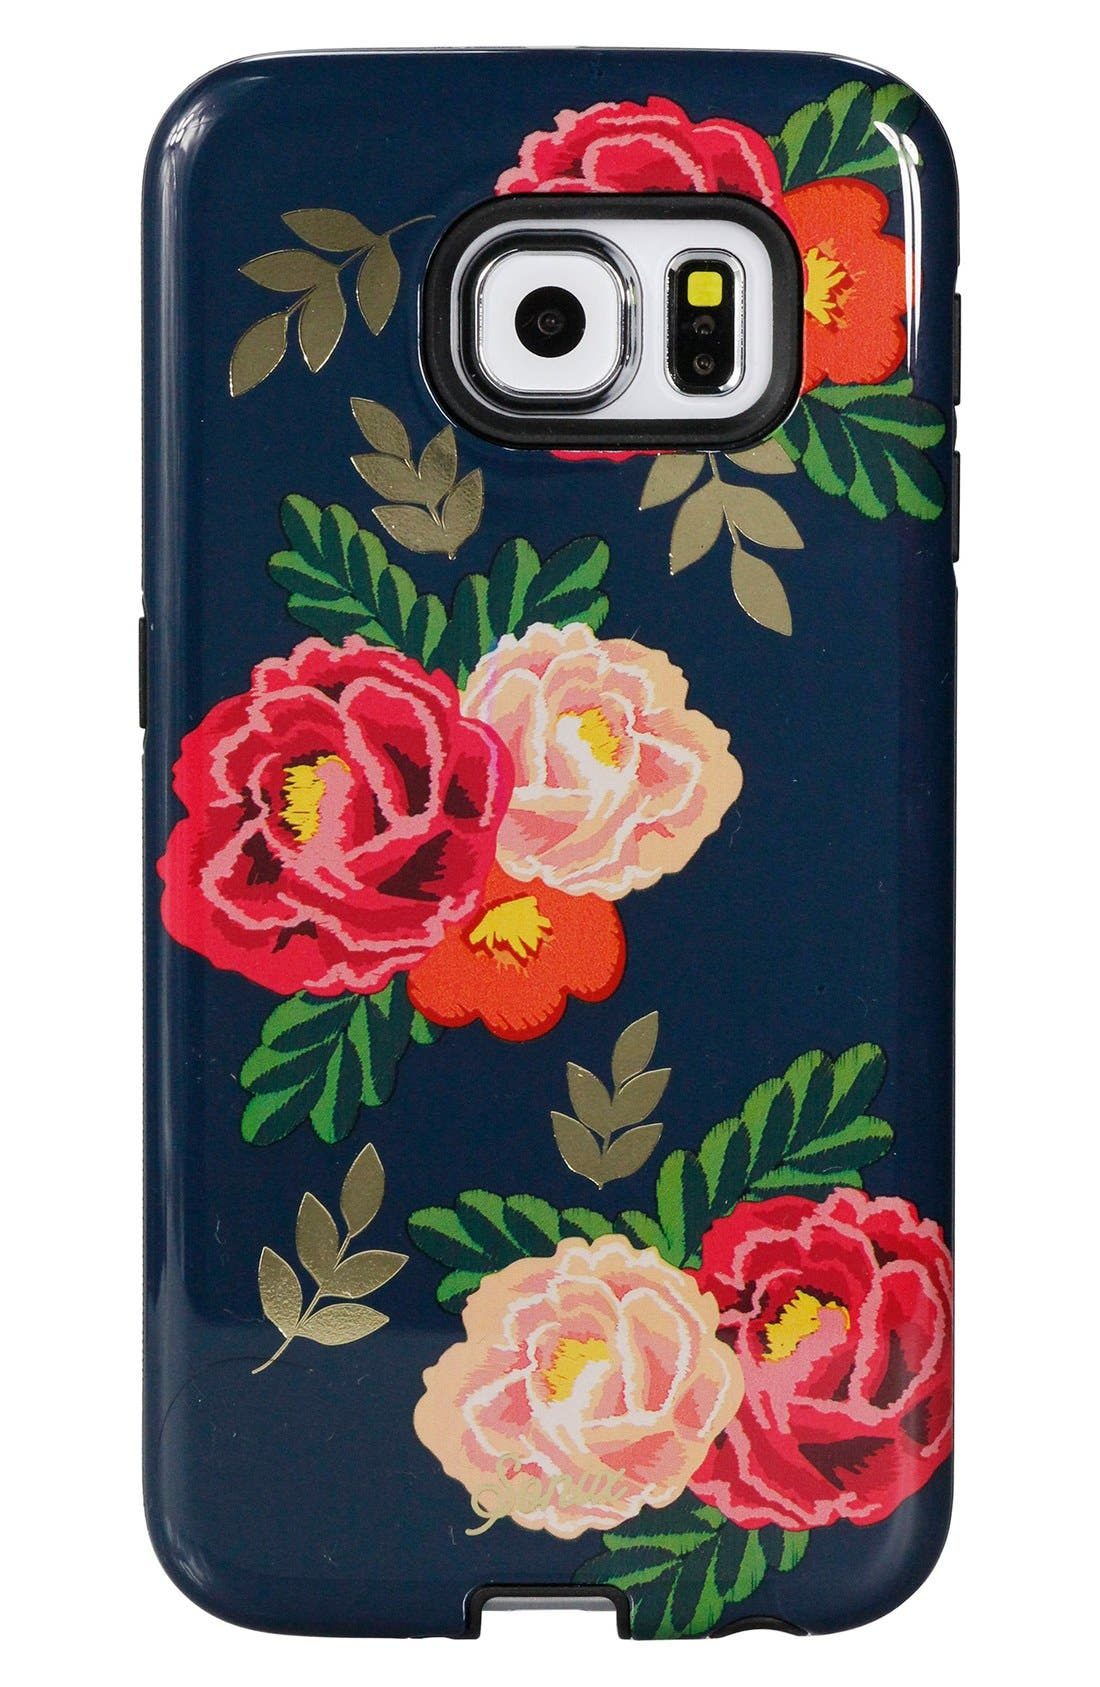 Alternate Image 1 Selected - Sonix 'Lolita' Samsung Galaxy S®6 Edge Case